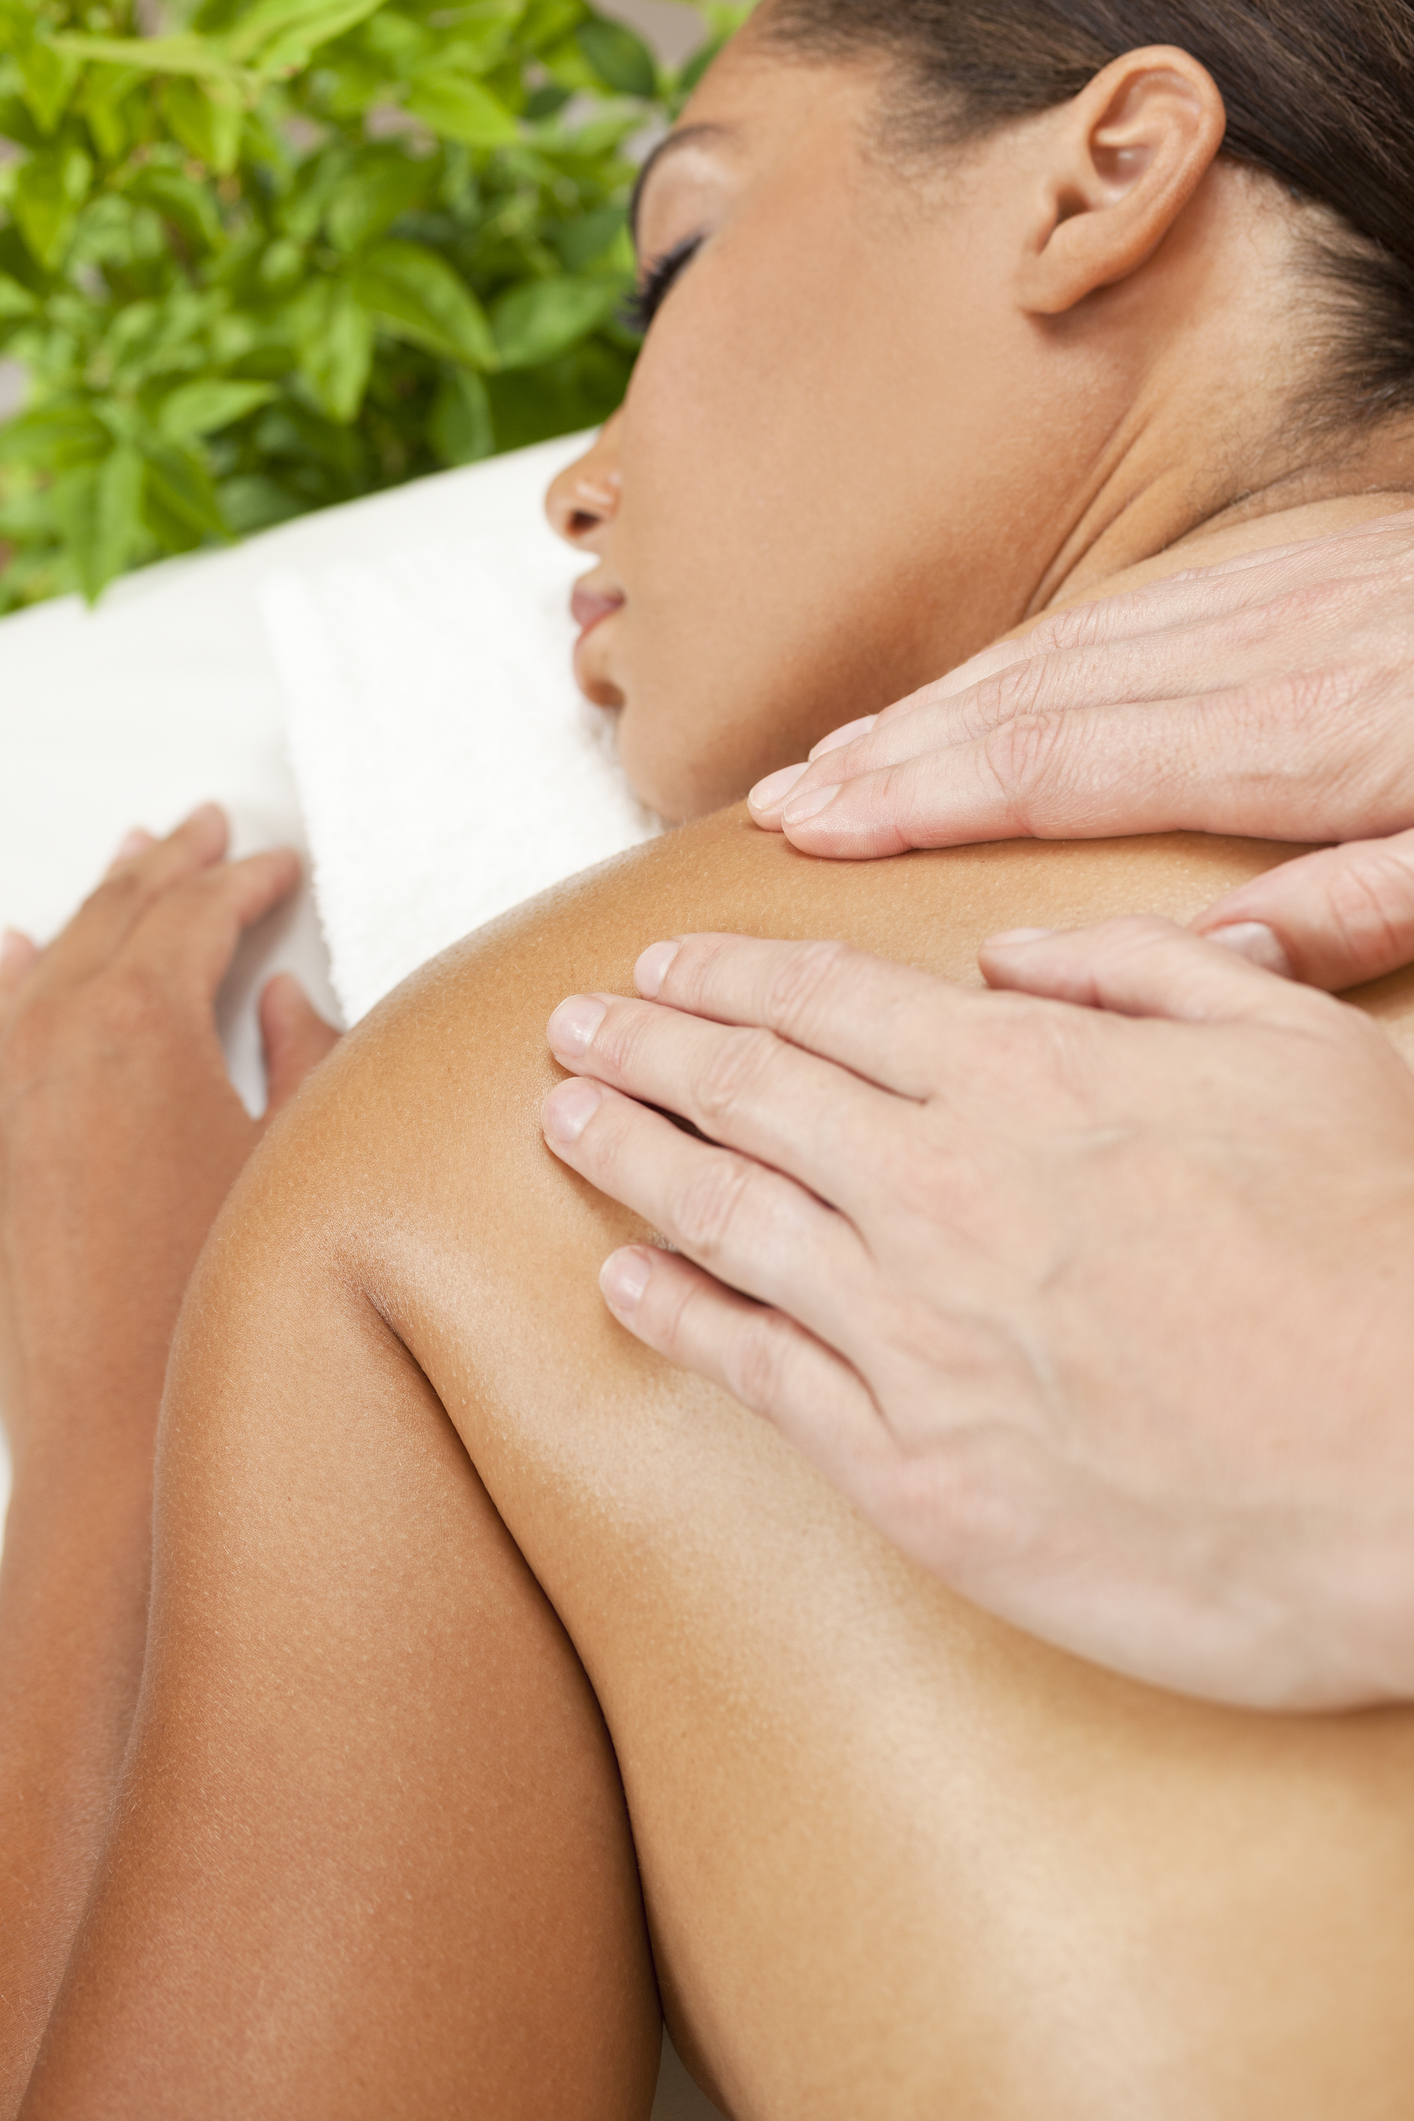 Relaxing Massage Therapy